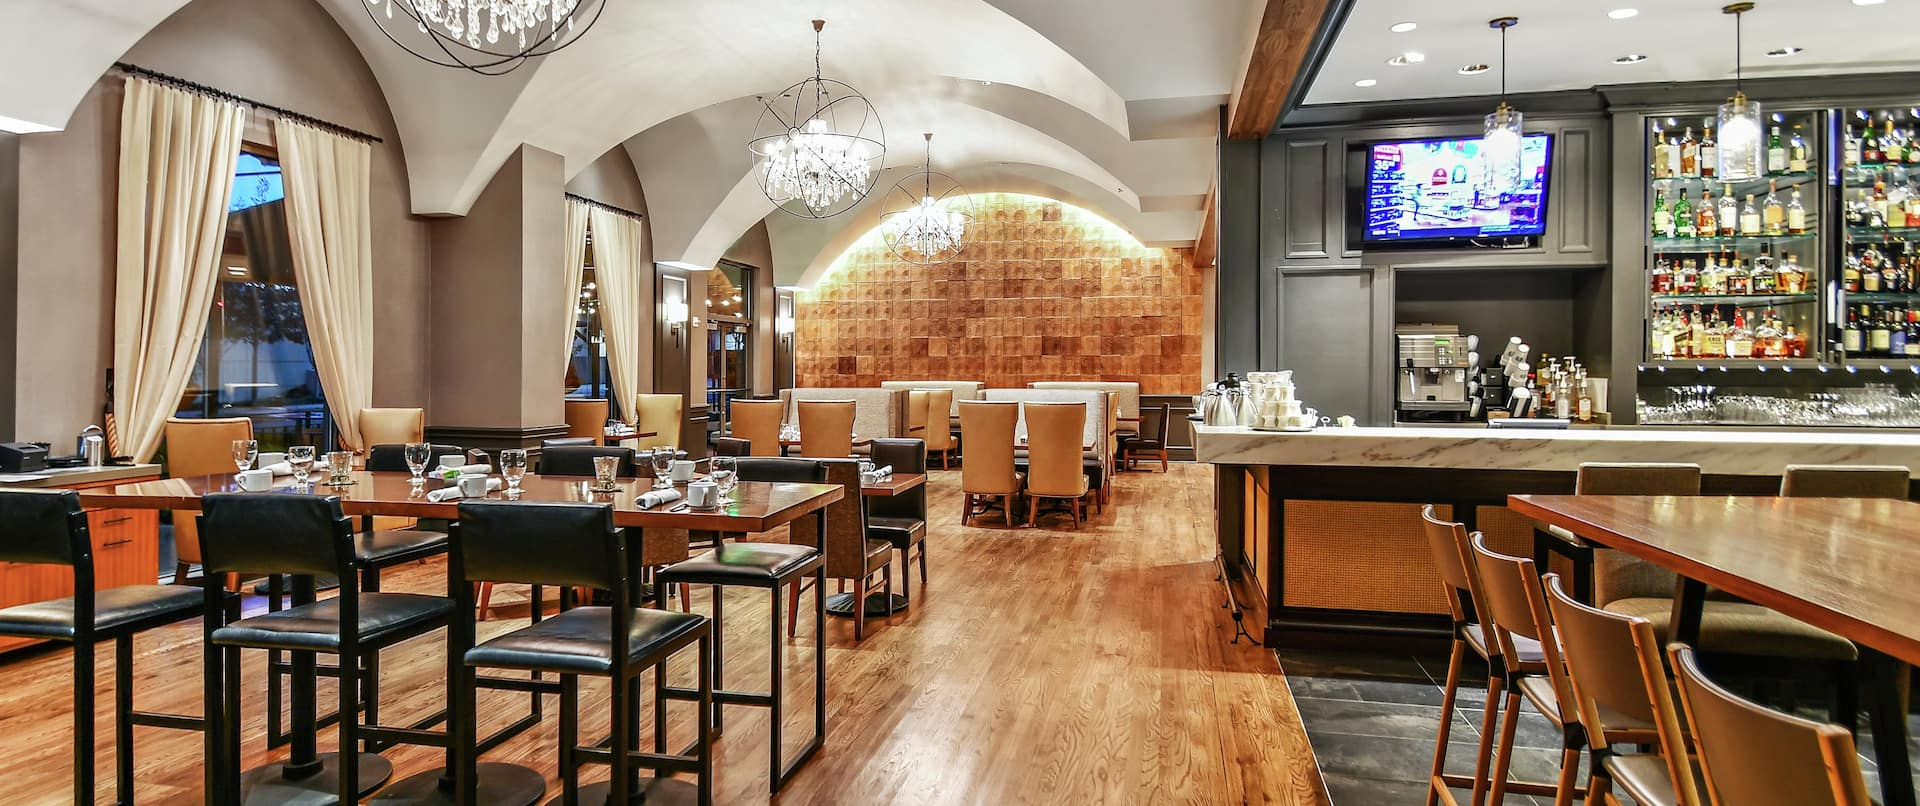 Dining Tables, Chairs, and Bar Seating in Grain Restaurant & Woodbine Bar